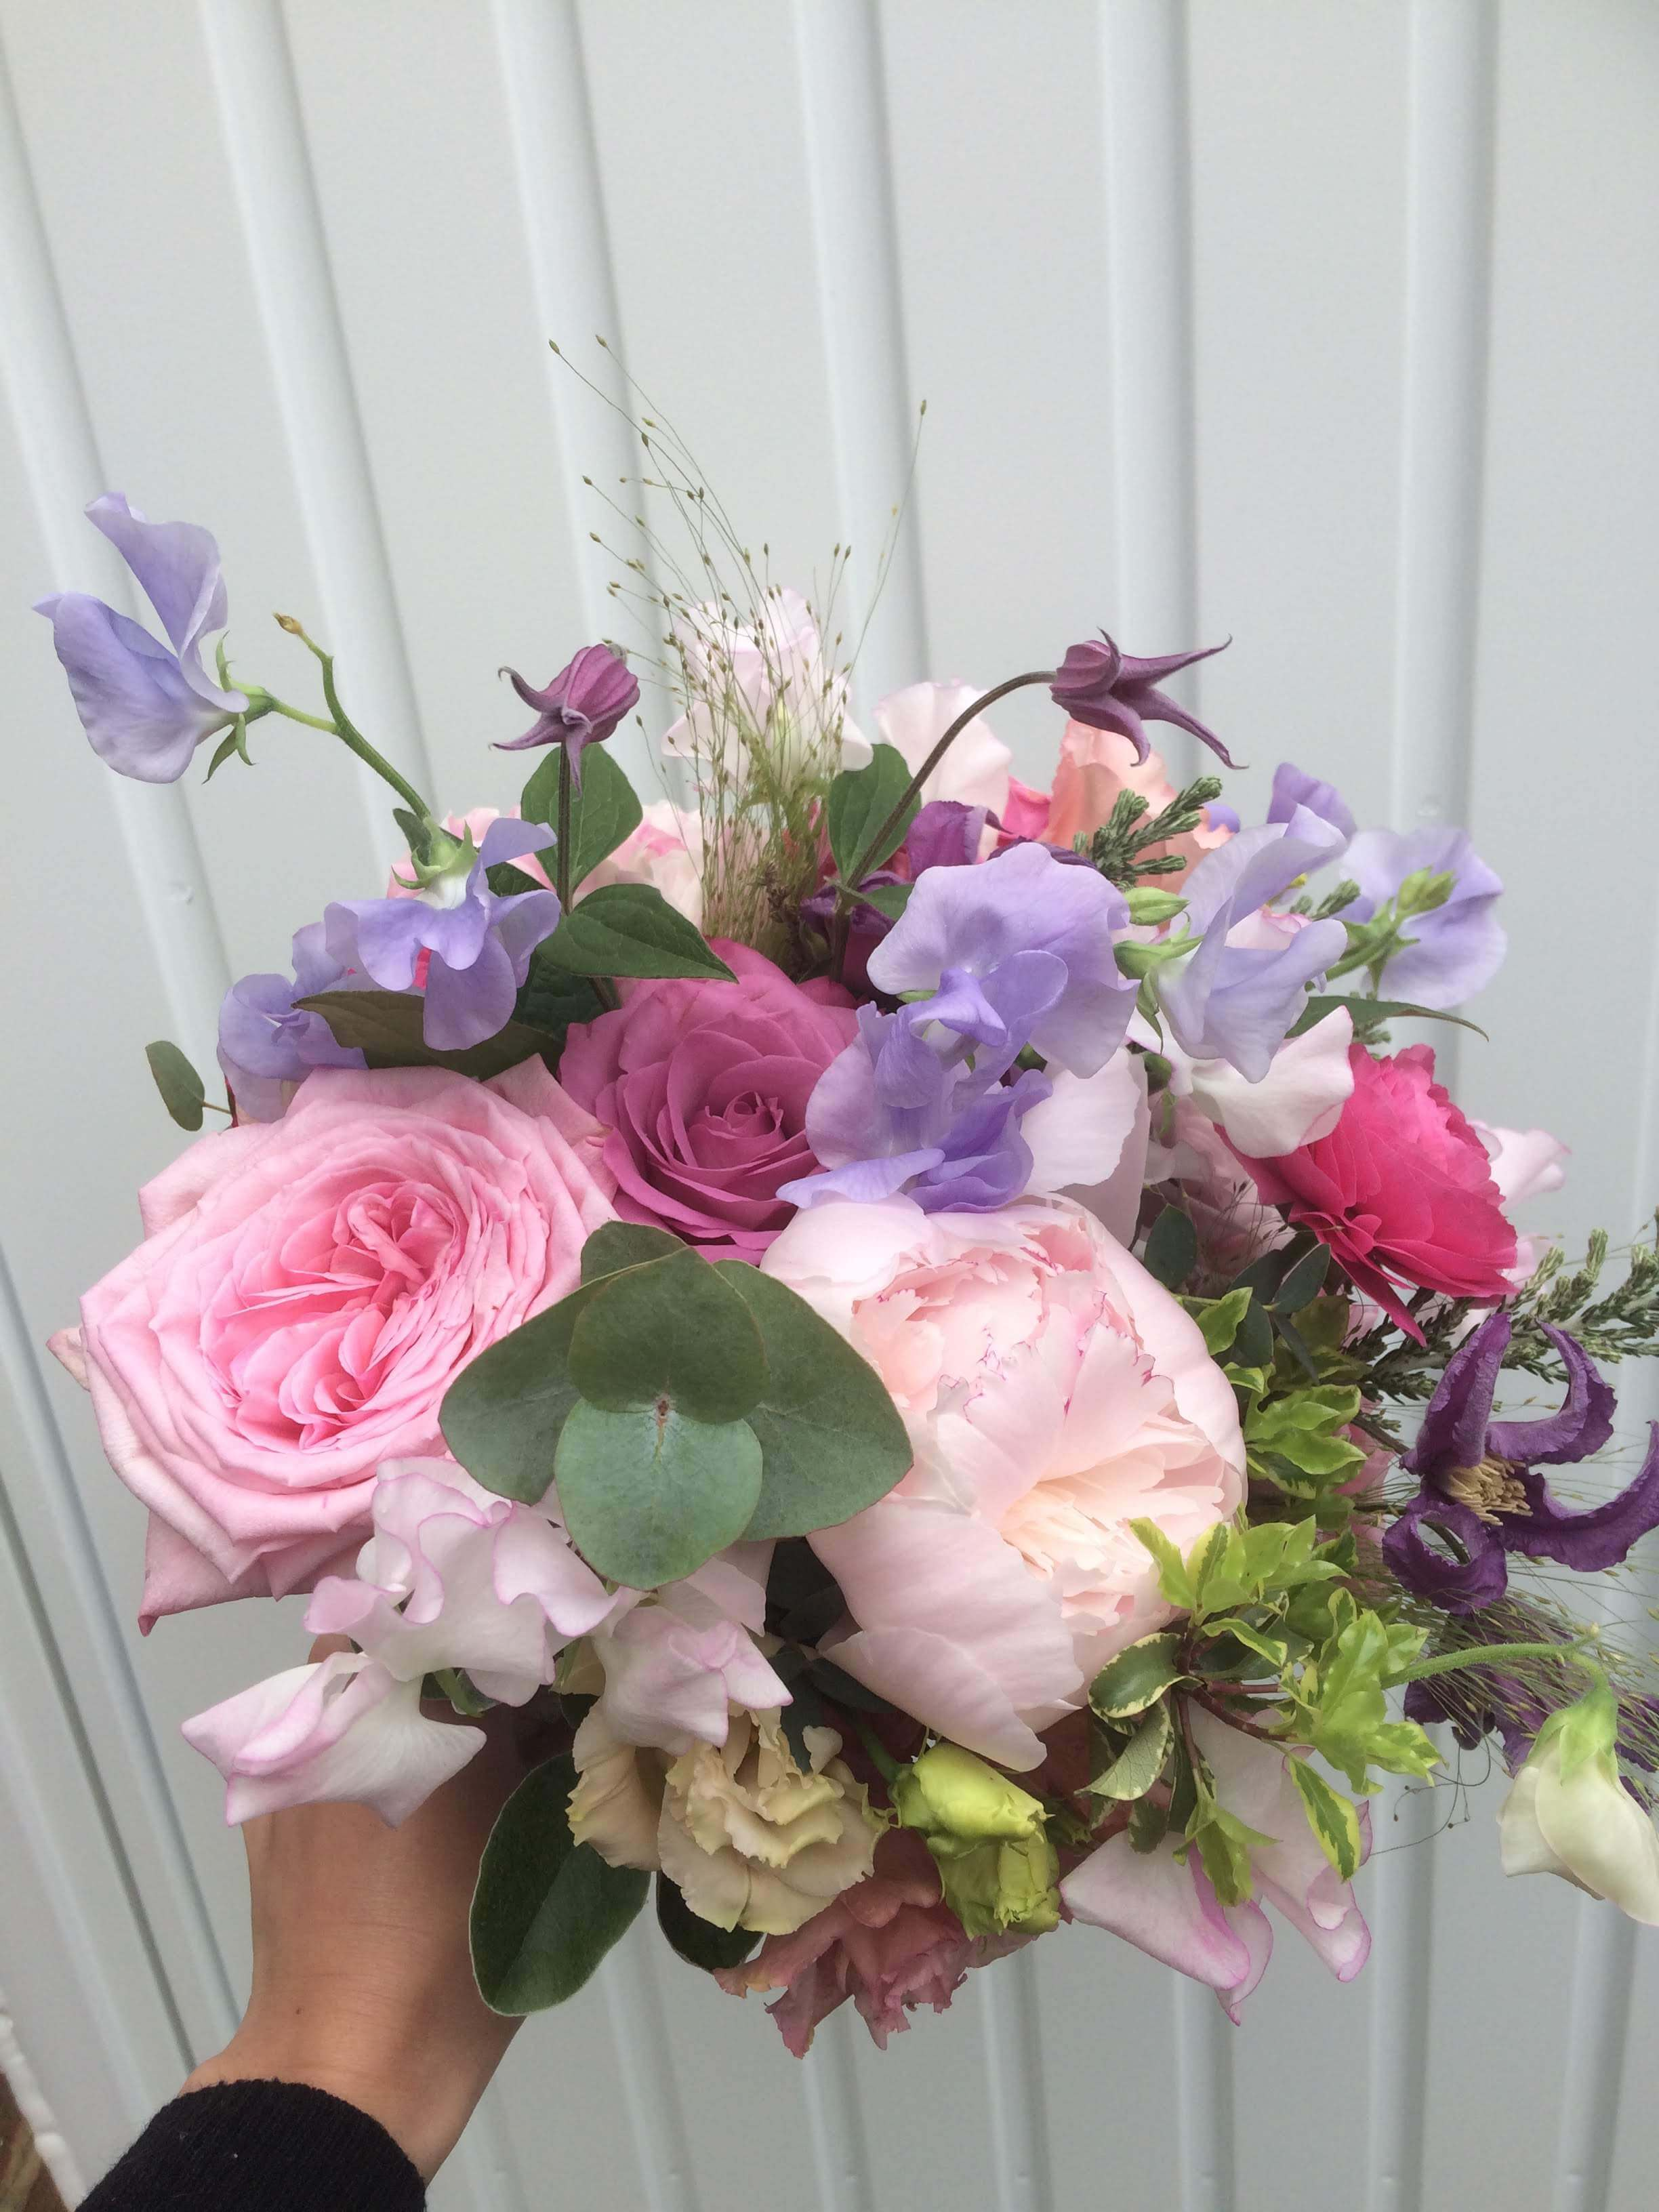 pangdean barn wedding florist, bridal bouquet with sweet peas and peonies